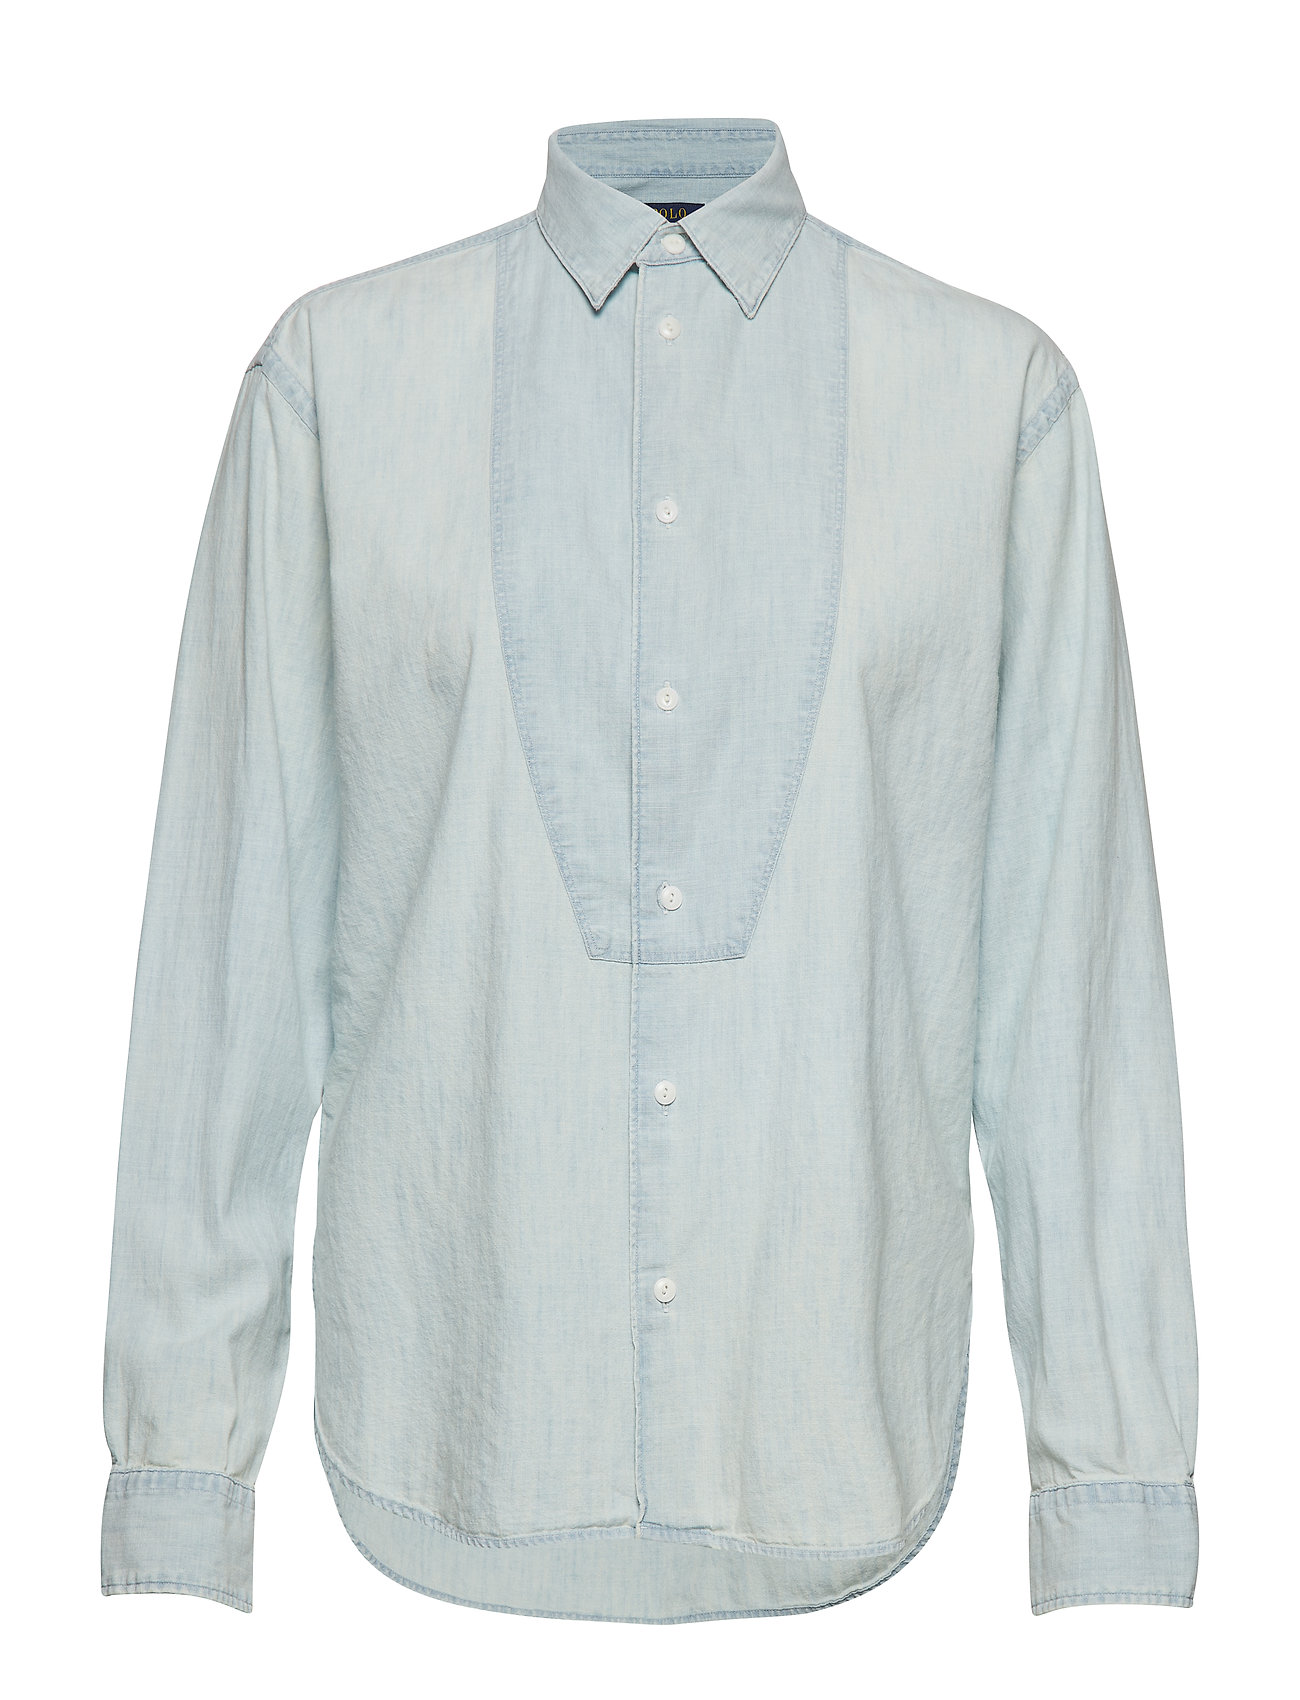 Polo Ralph Lauren Chambray Button-Down Shirt